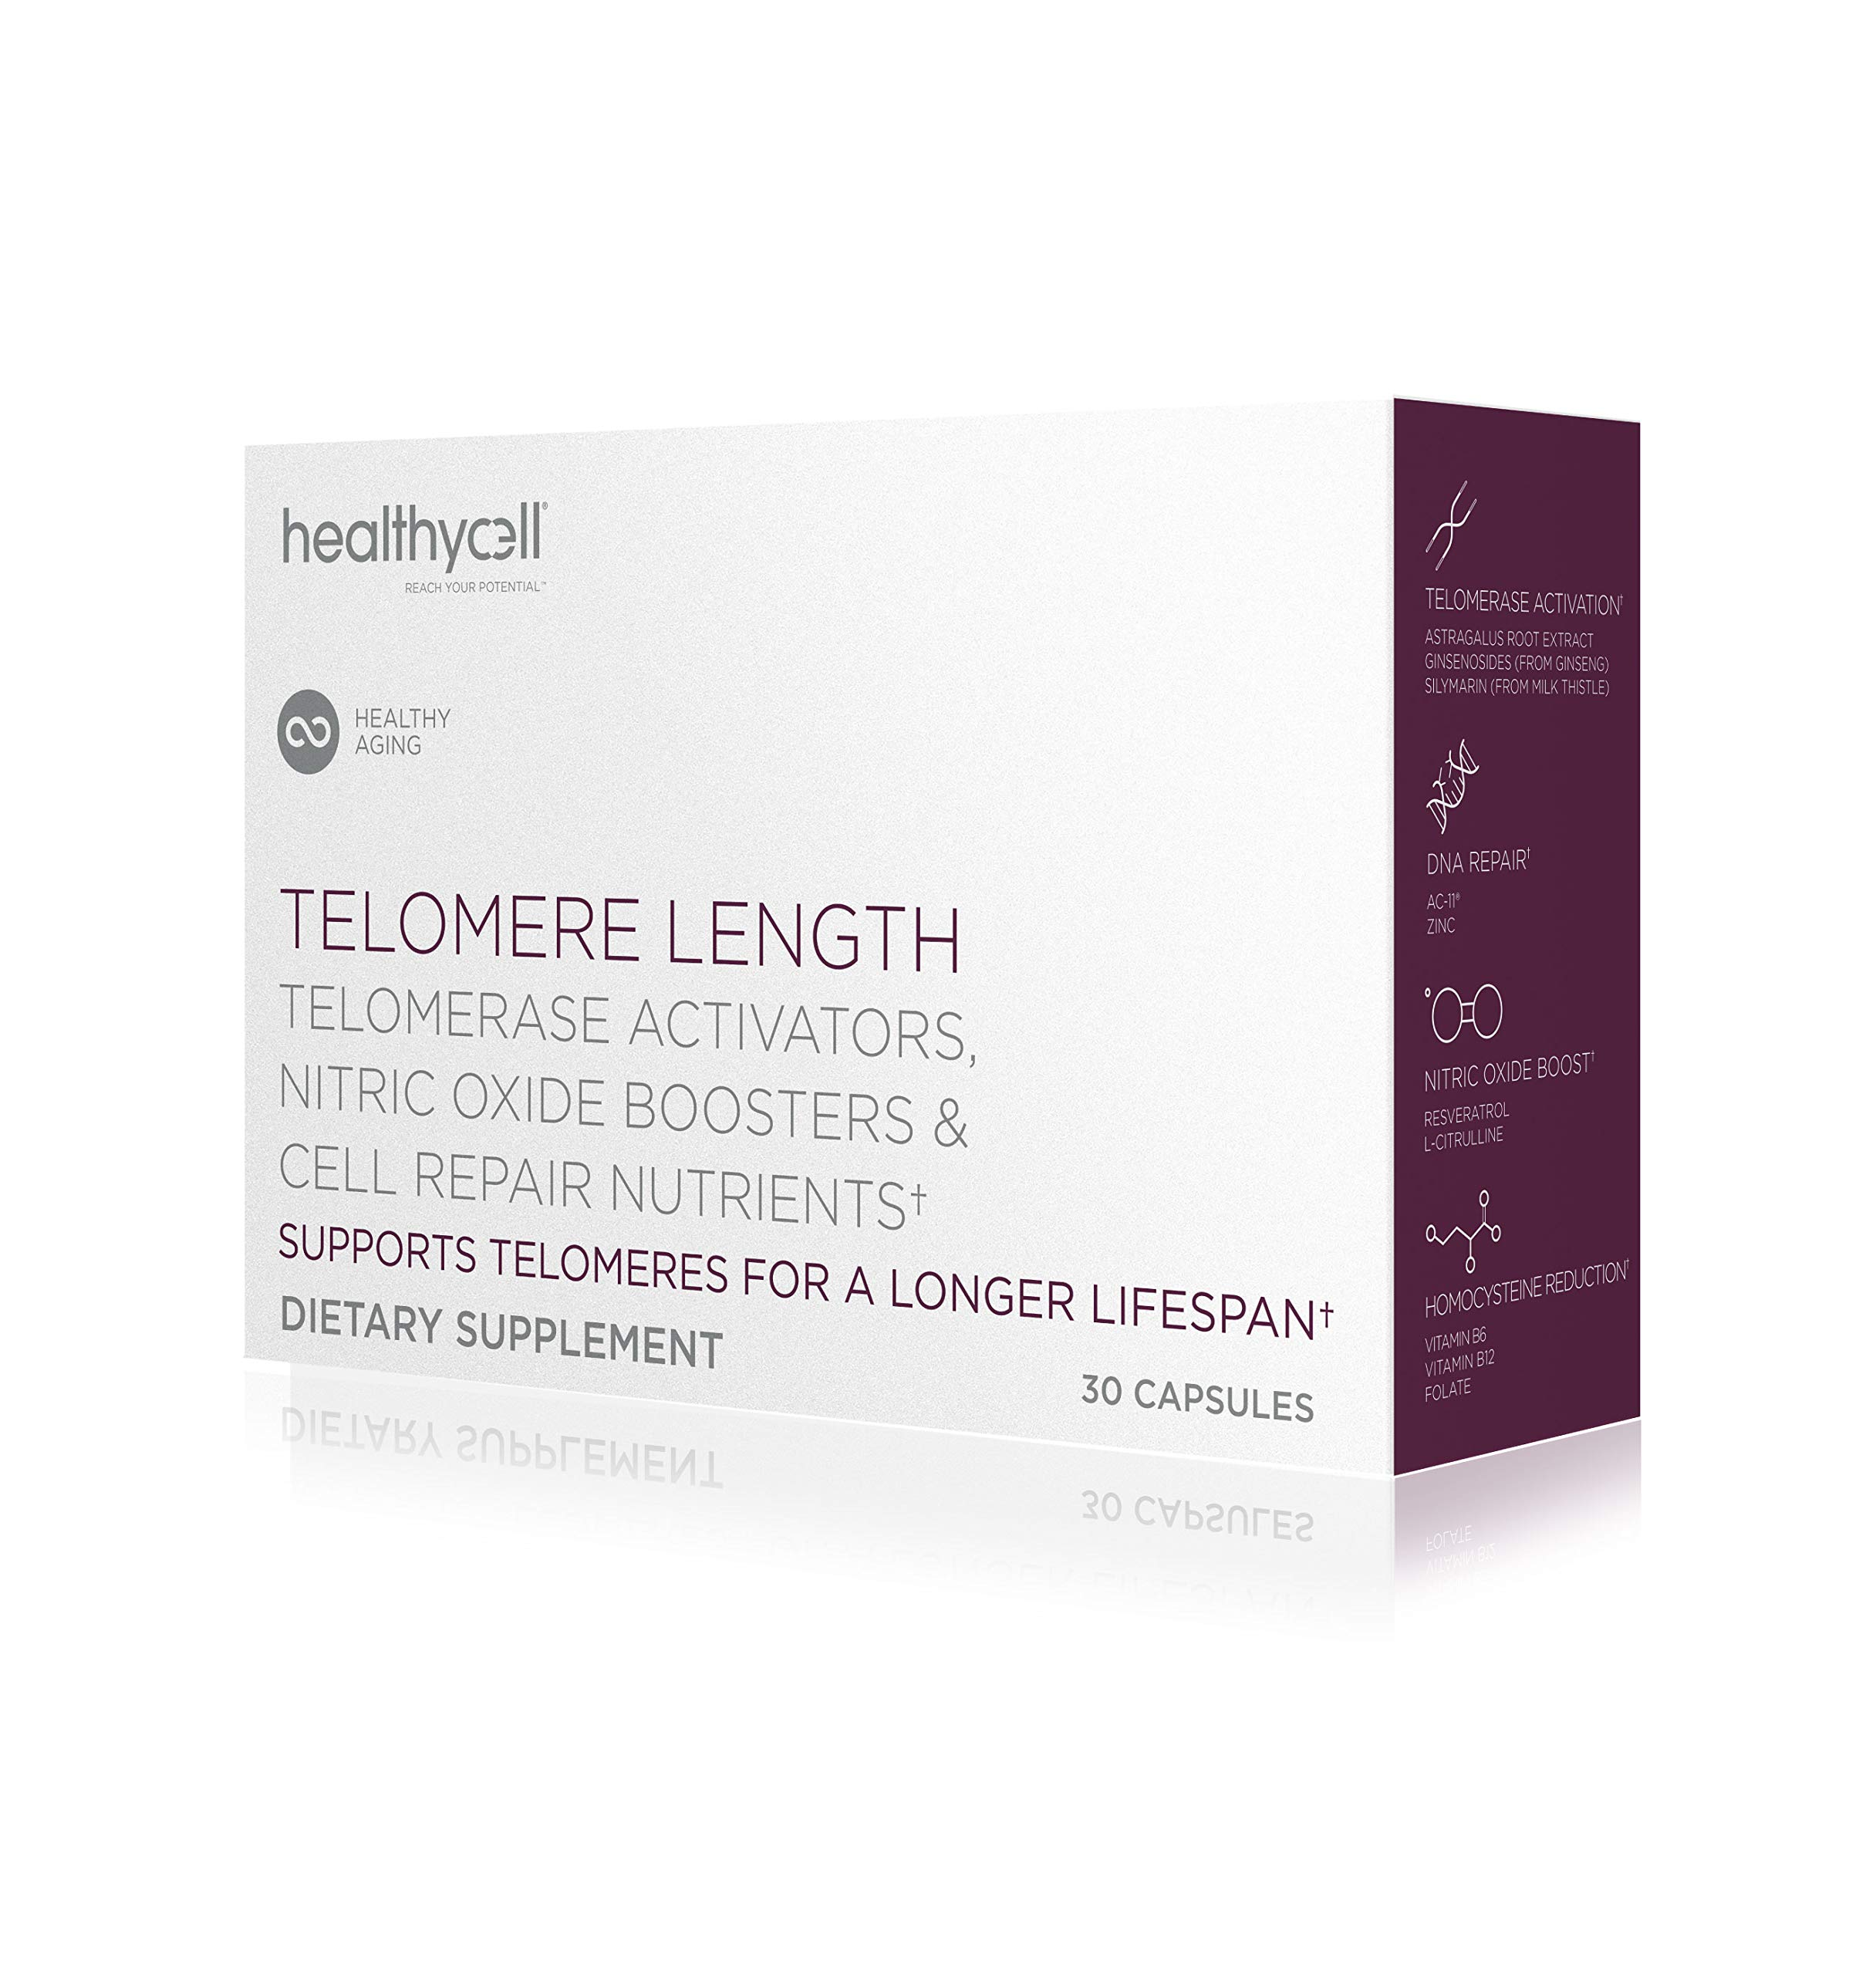 Healthycell Telomere Length Supplement with AC-11 - Non-GMO